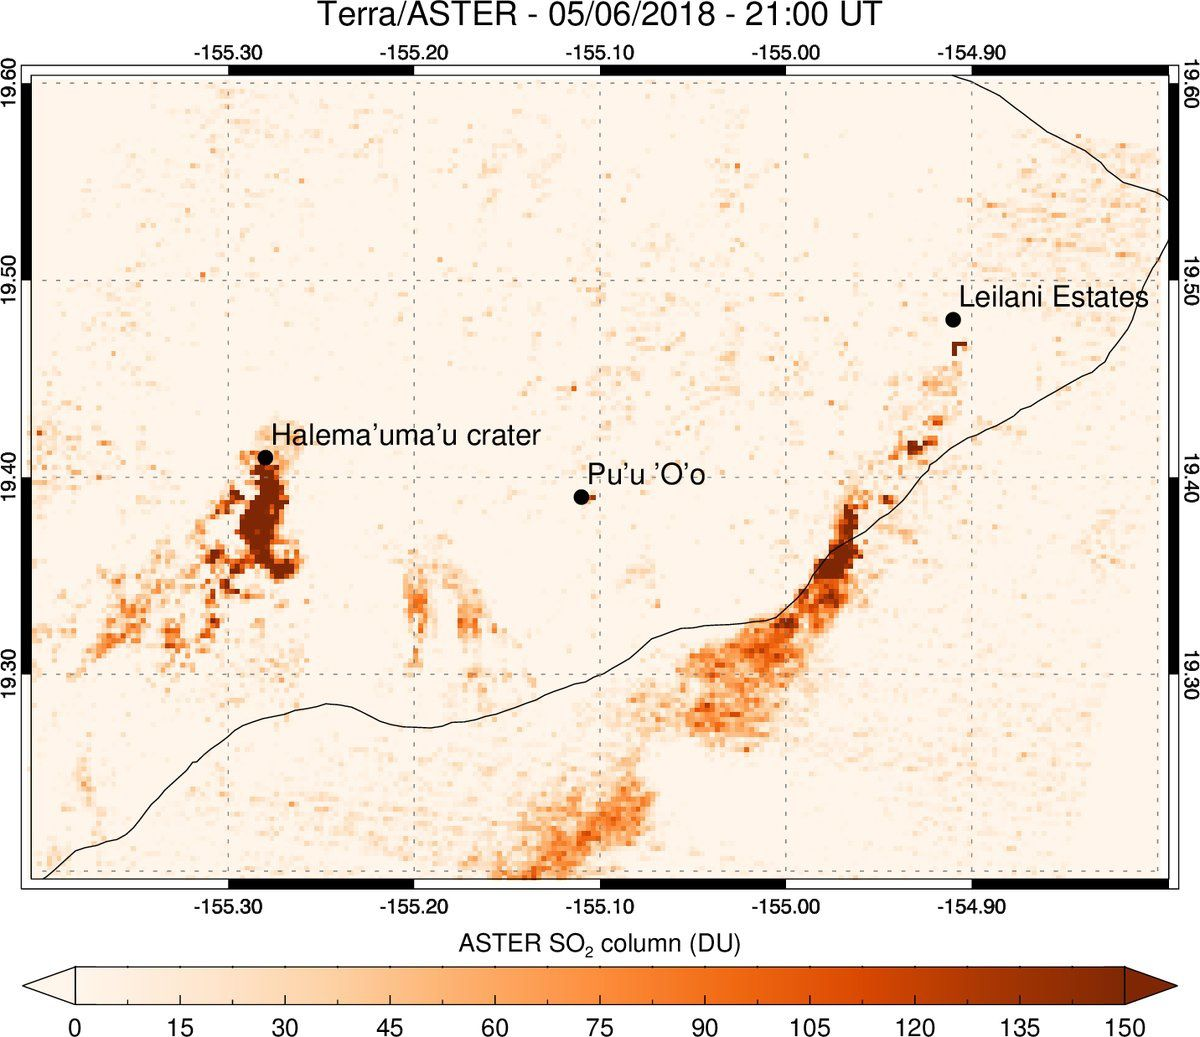 Sulfur dioxide emissions quantified by the Nasa Terra Aster satellite 06.05.2018; they indicate cracks in Leilani Estates as the main probable source of sulfur dioxide - Doc. Via Simon Carn